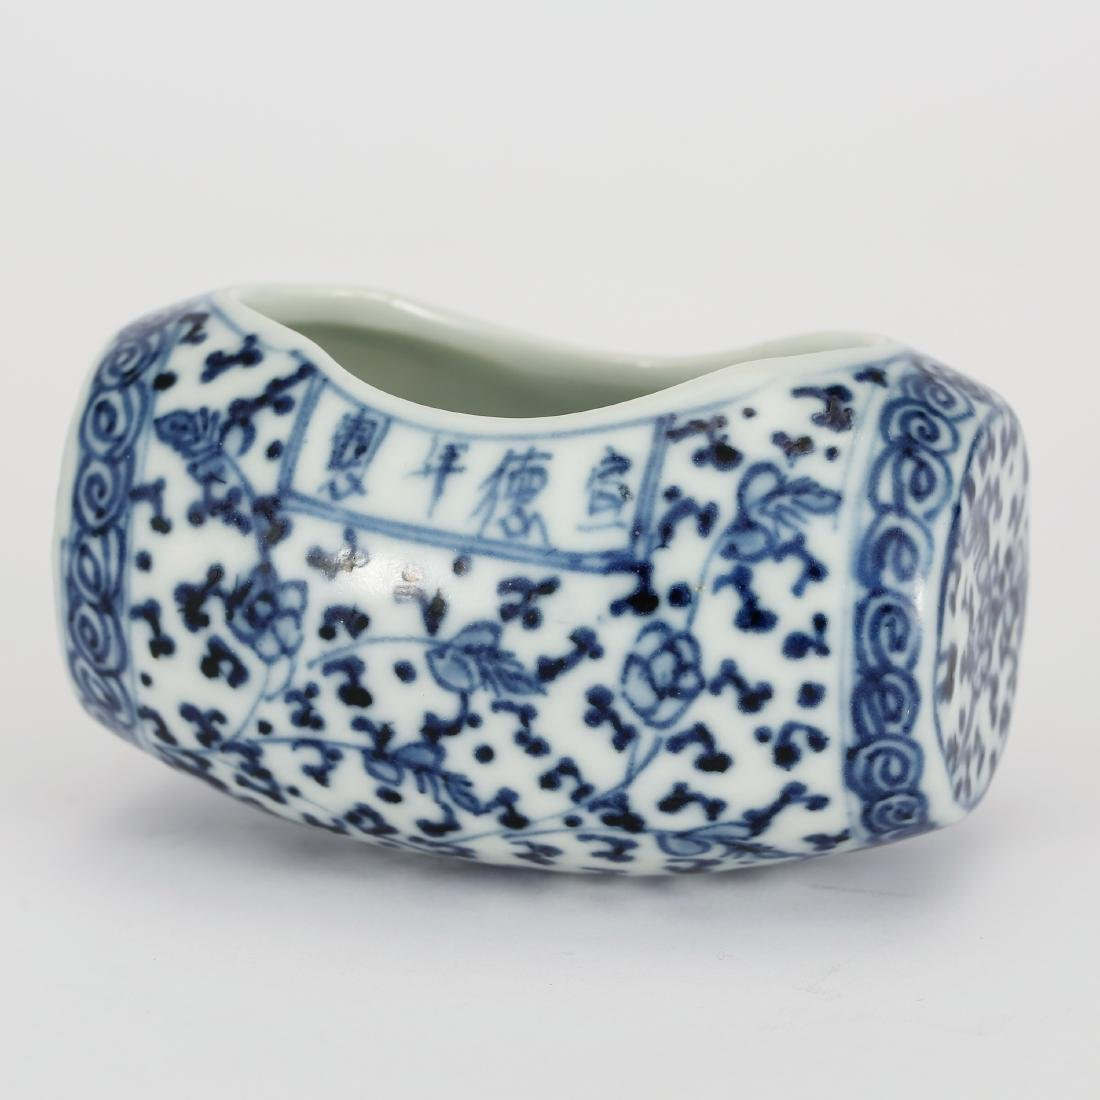 CHINESE BLUE AND WHITE BIRD FEEDER WITH MARK